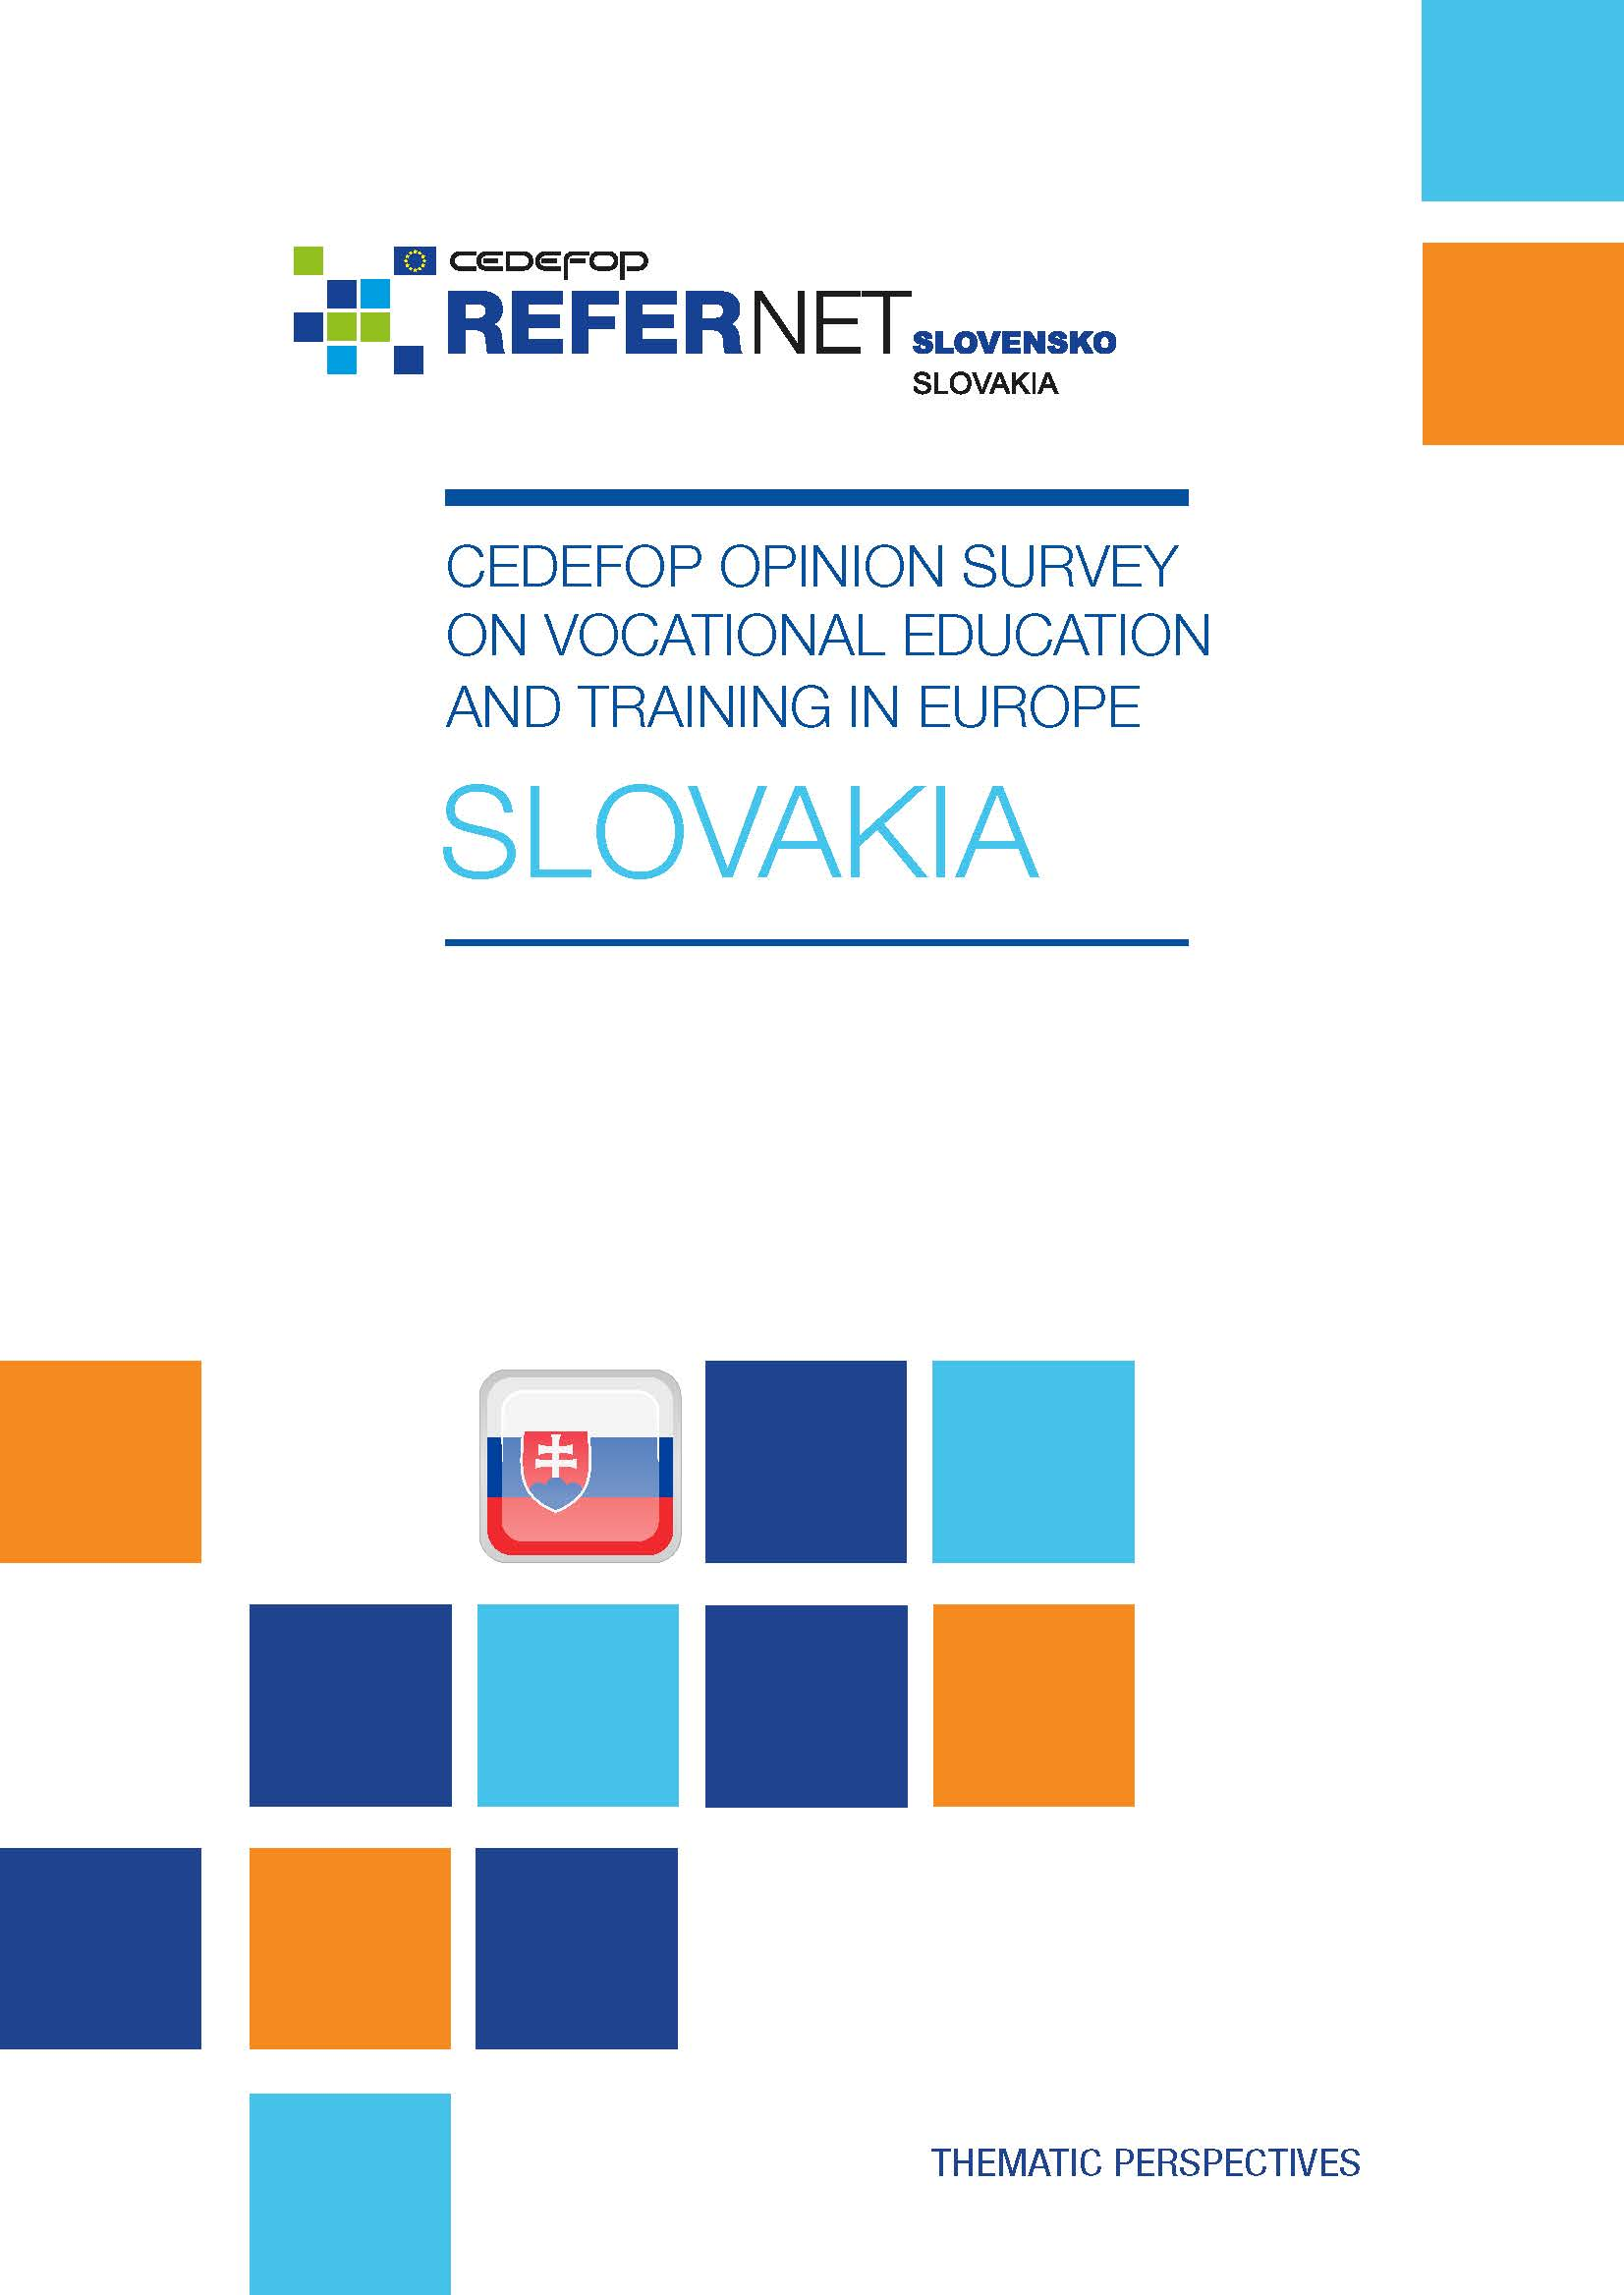 Cedefop public opinion survey on vocational education and training in Europe: Slovakia